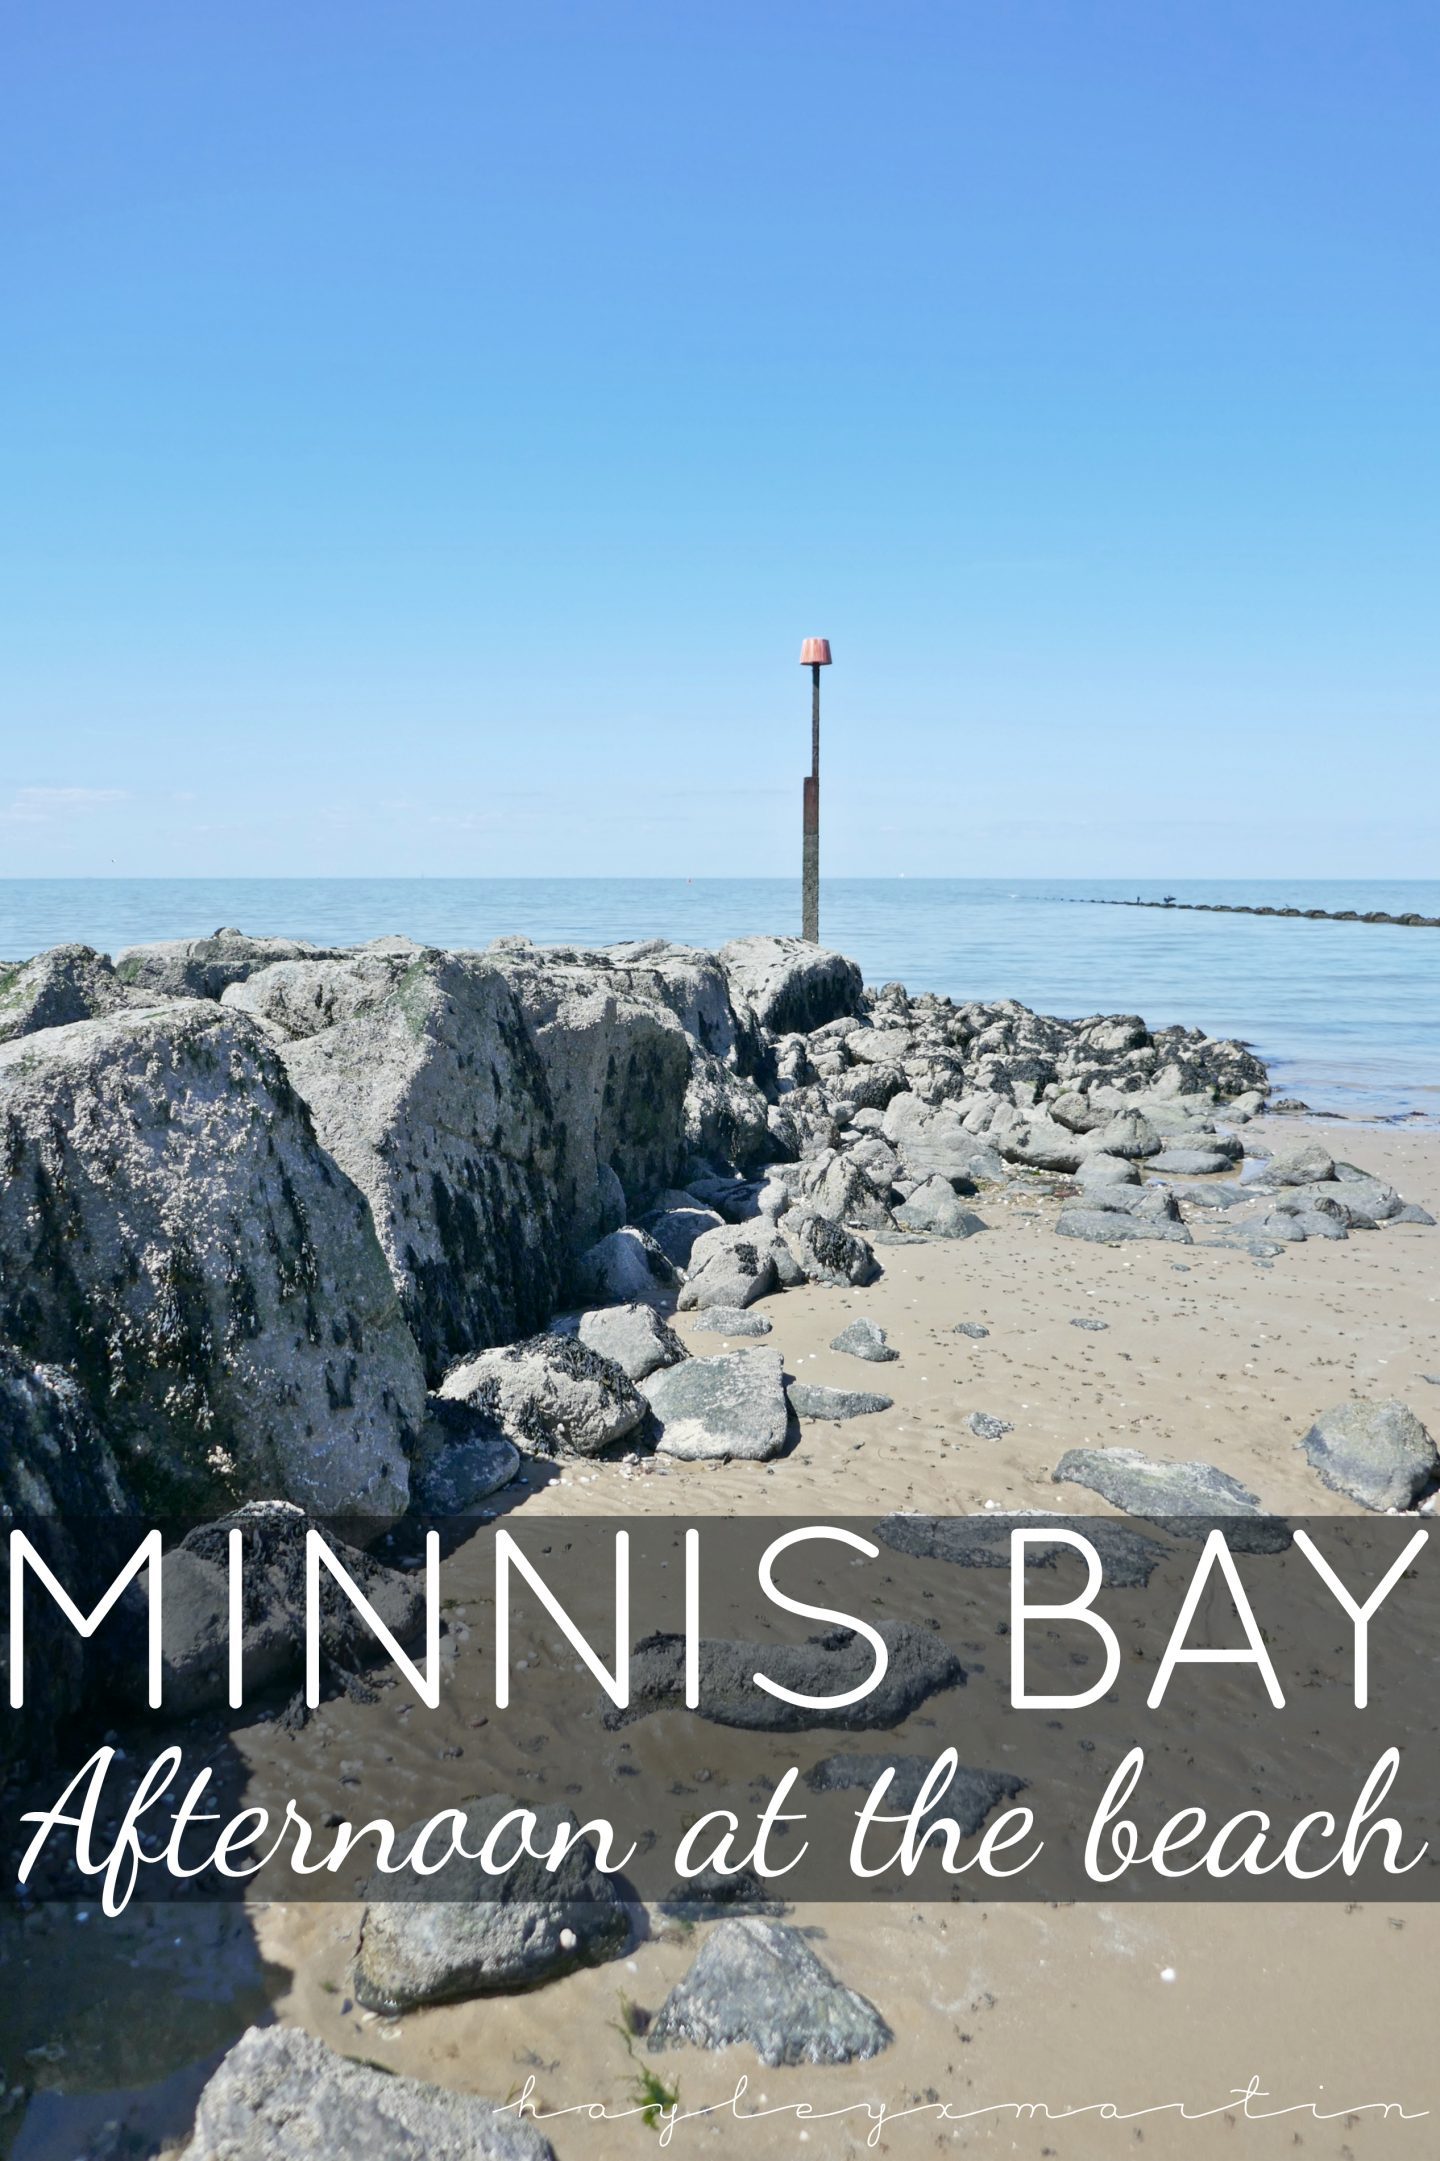 Minnis Bay | Afternoon at the beach